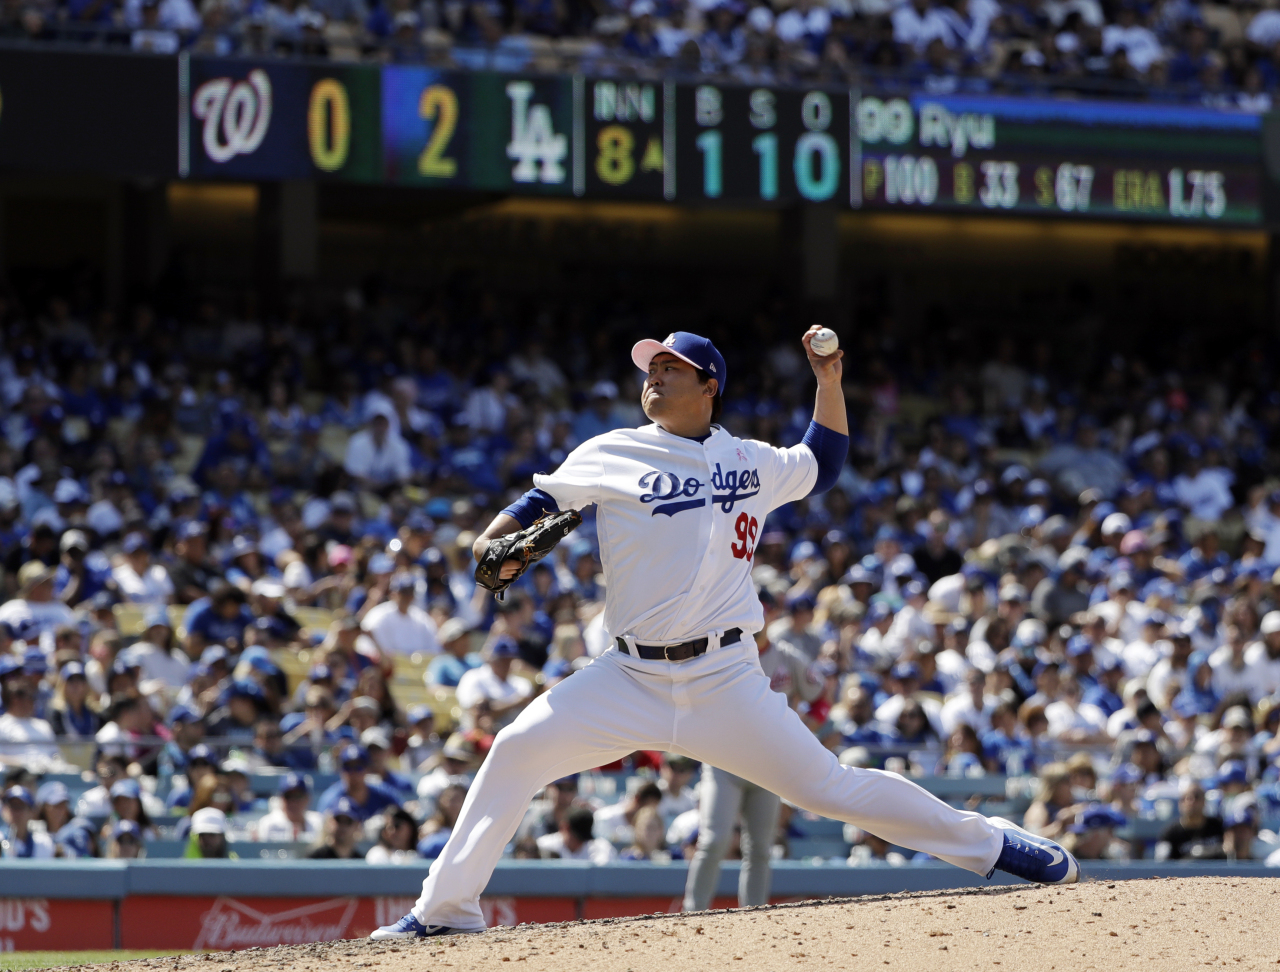 Los Angeles Dodgers starting pitcher Hyun-Jin Ryu throws to the Washington Nationals during the eighth inning of a baseball game Sunday, May 12, 2019, in Los Angeles. (AP)